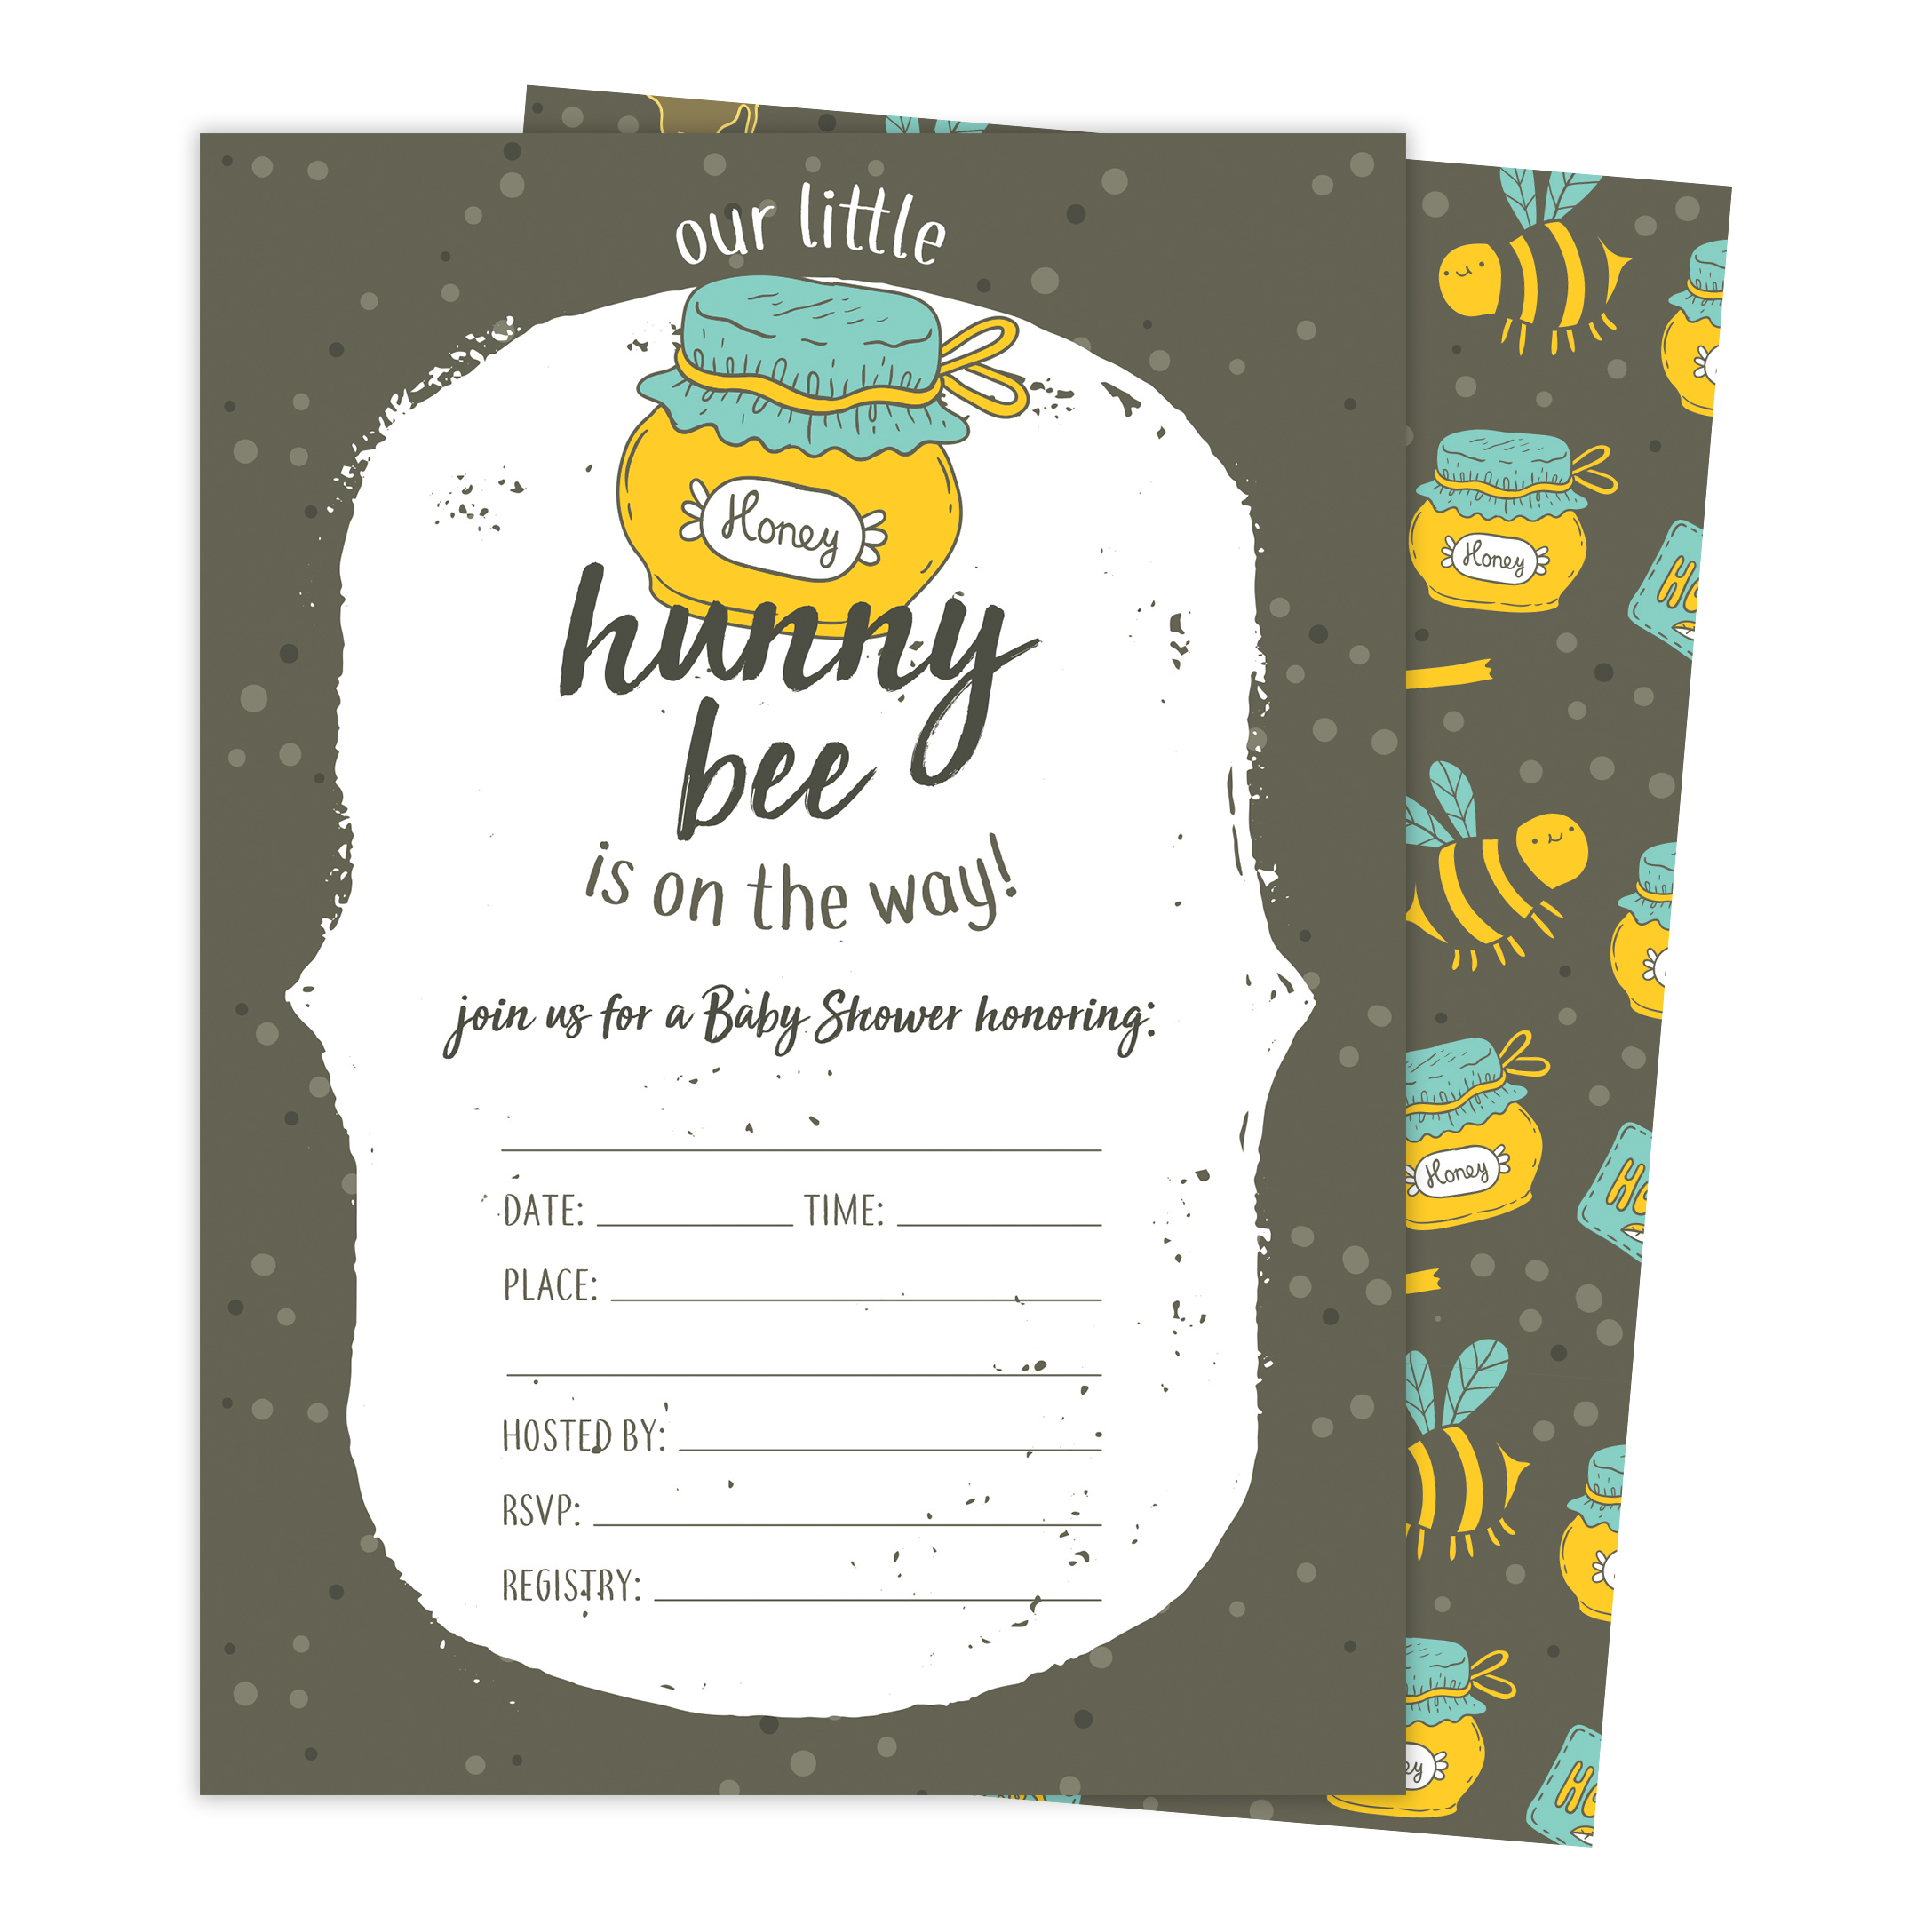 Bee 1 Bumble Bee Baby Shower Invitations Invite Cards (25 Count) With Envelopes & Seal Stickers Vinyl Girl Boy